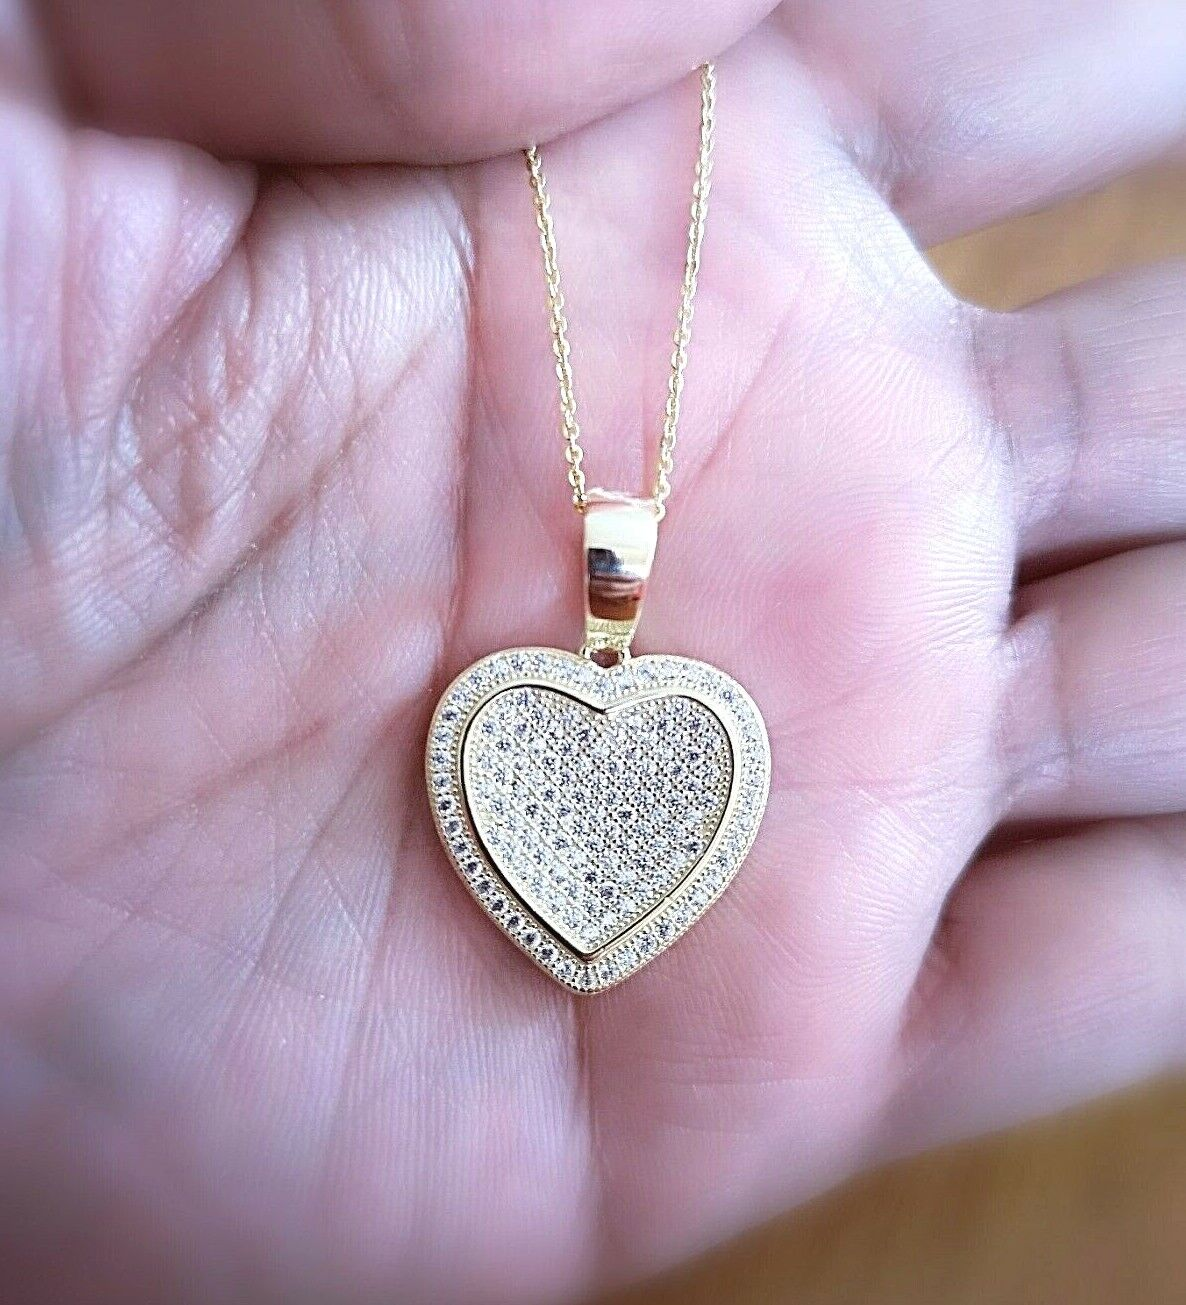 1 Ct Diamond Pendant Womens Necklace Heart Shape in 14K Yellow Gold over Chain 1